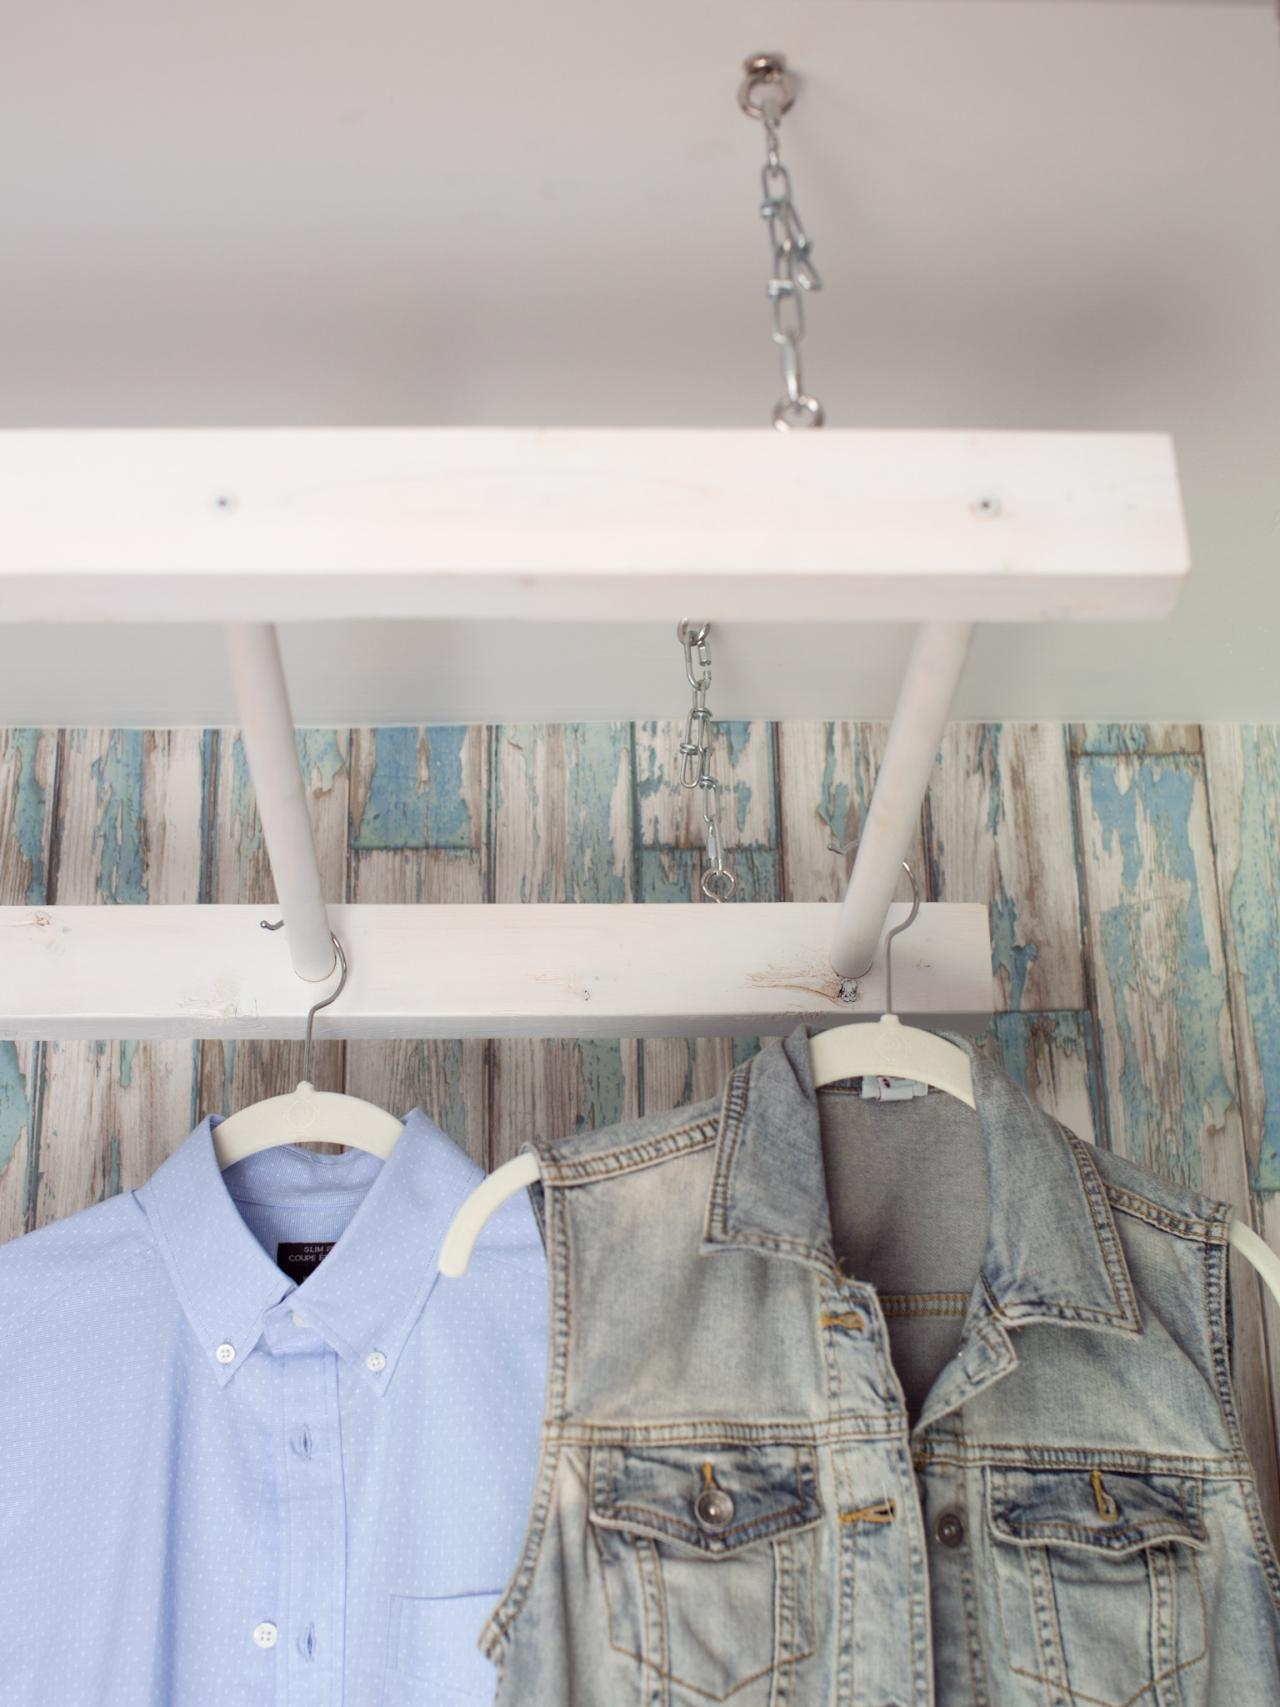 10 Ideal Laundry Room Drying Rack Ideas %name